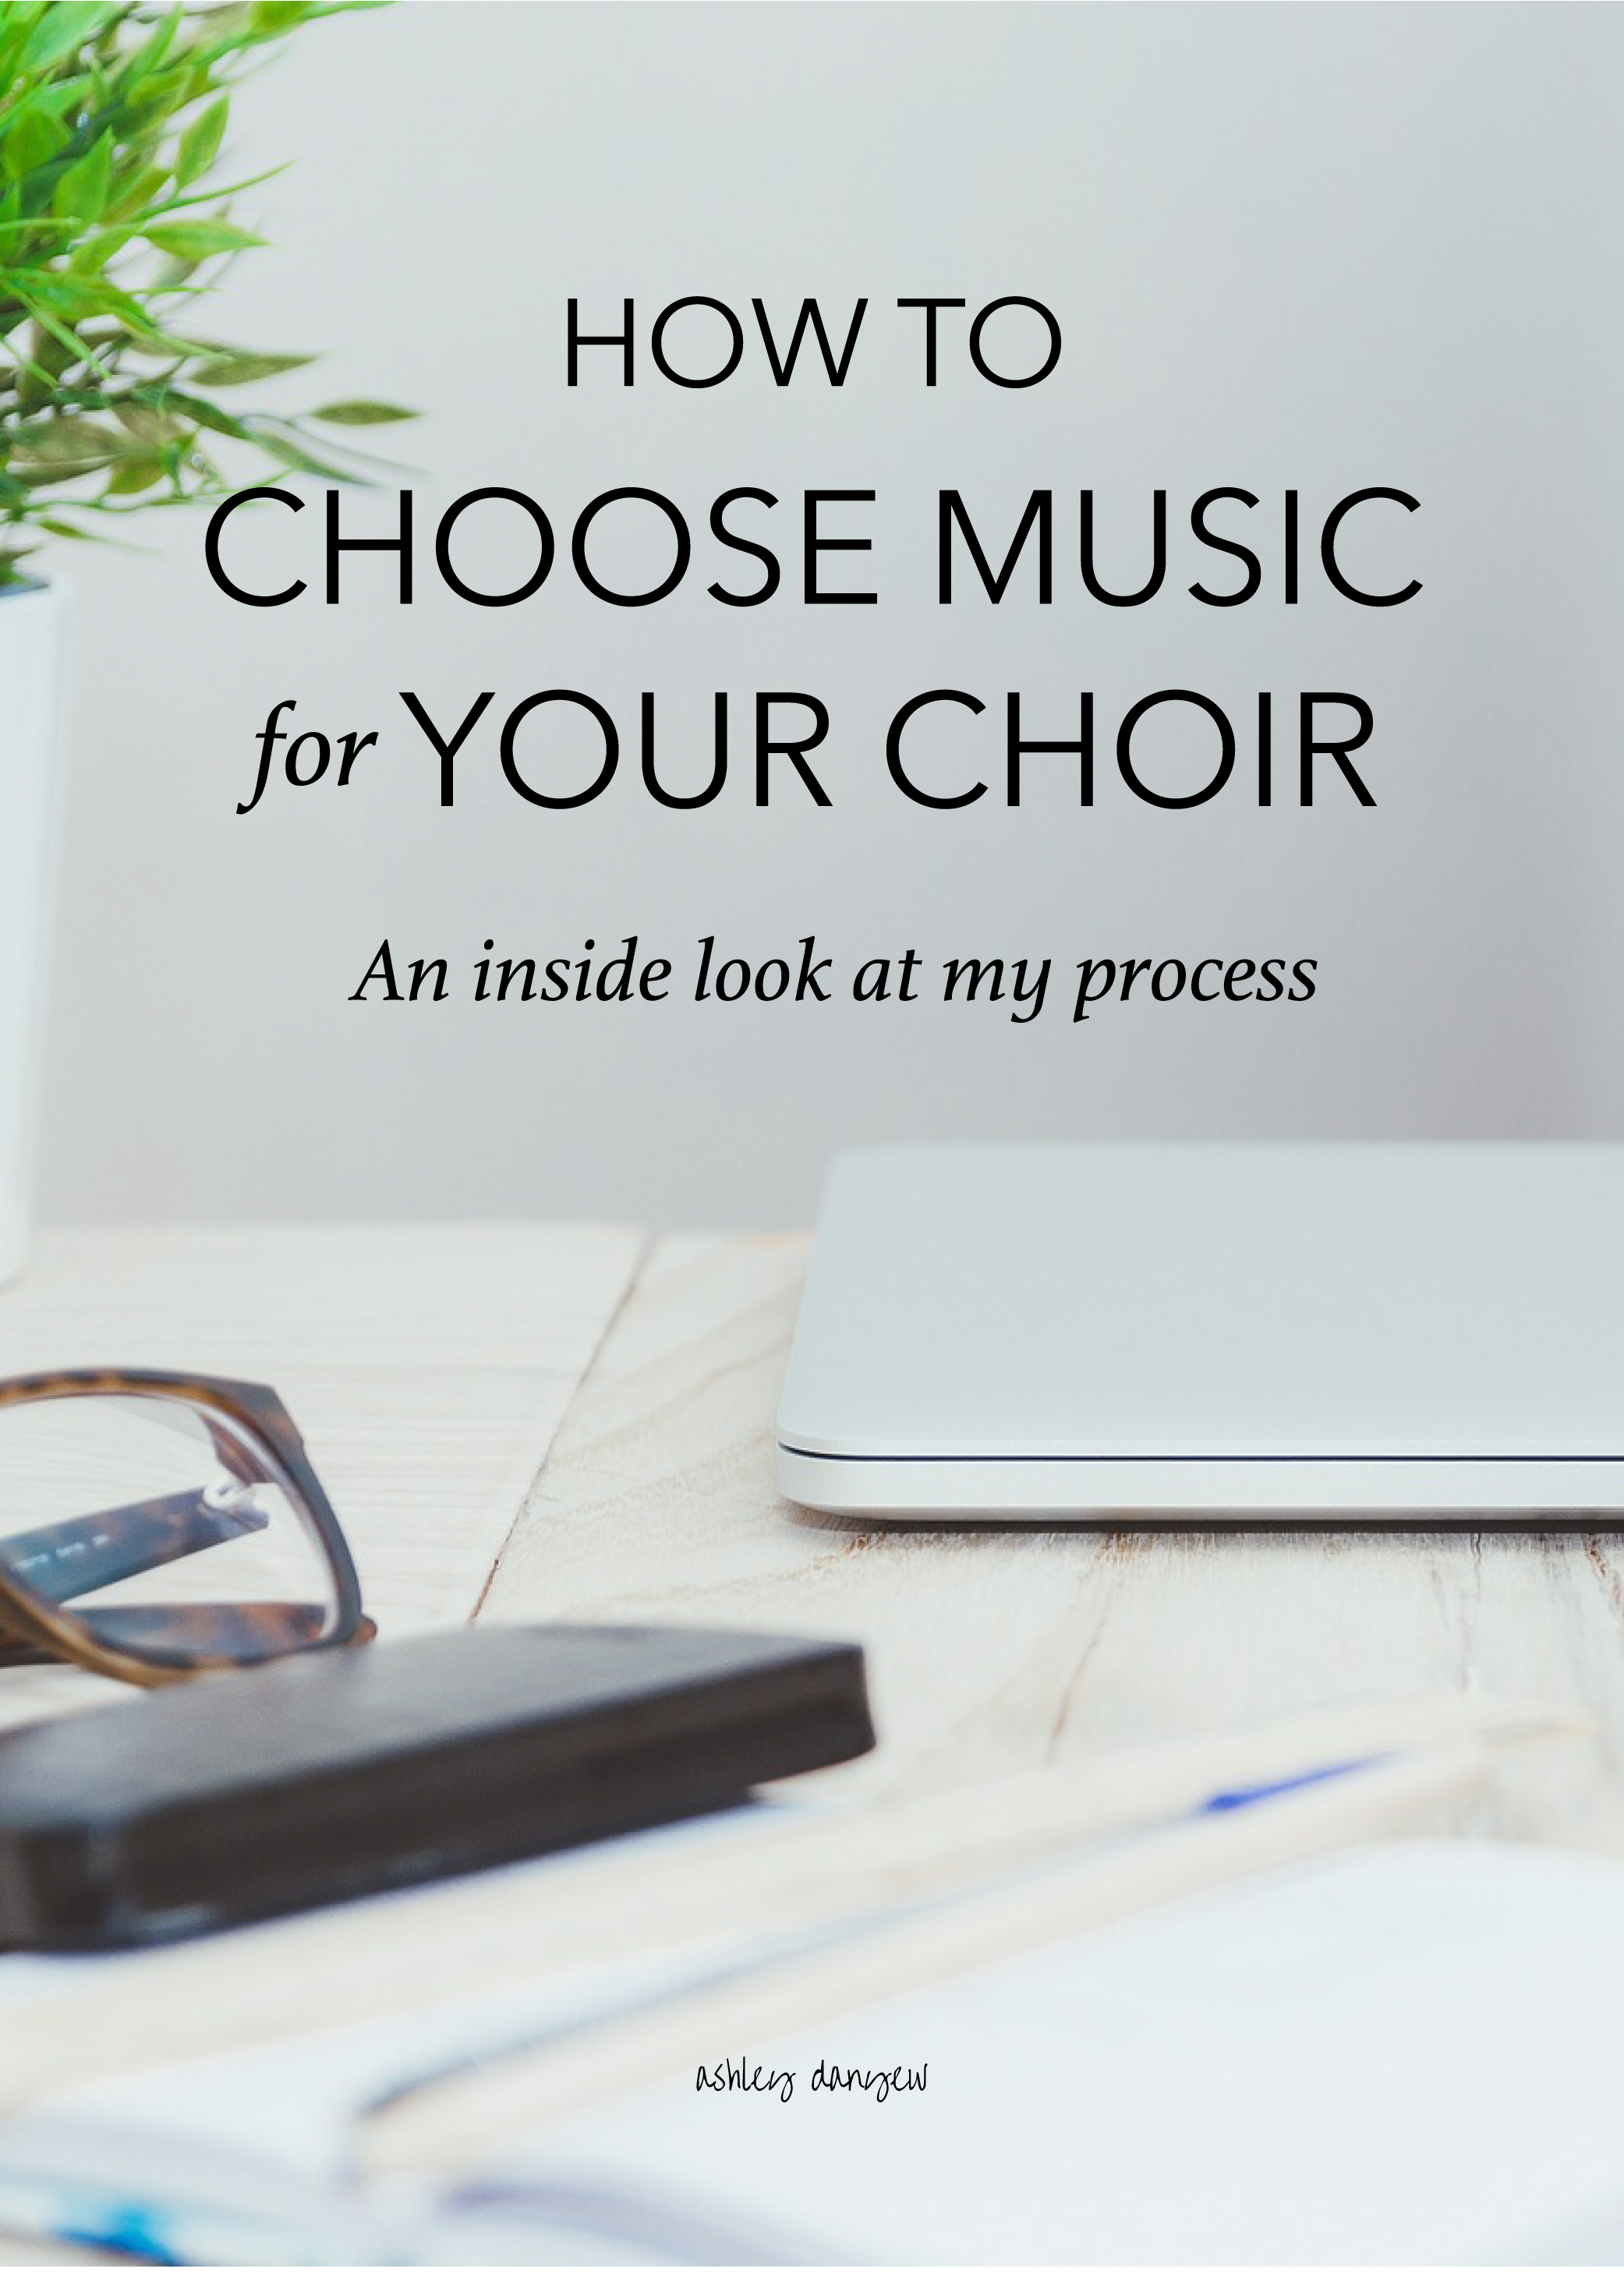 How-to-Choose-Music-for-Your-Choir-01.png